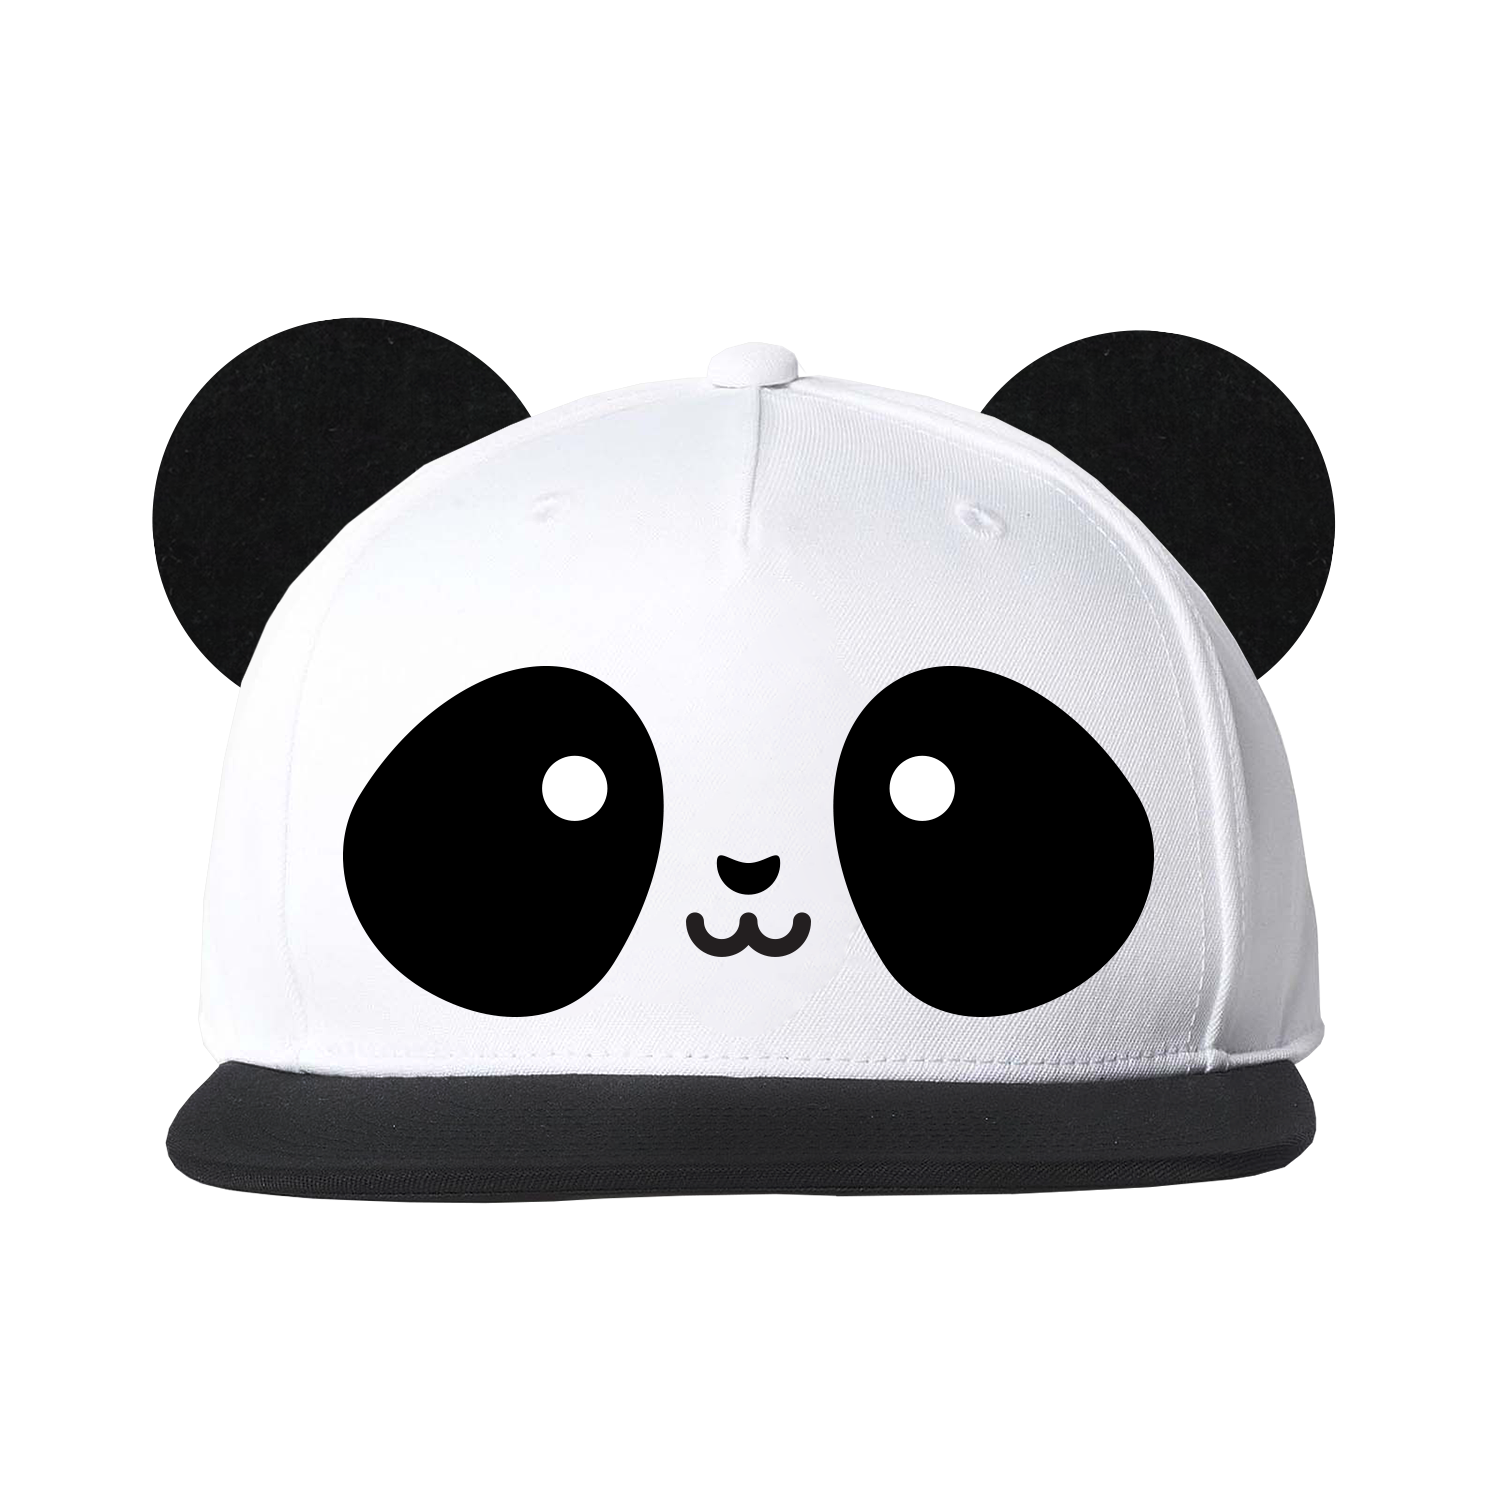 Whistle flute kawaii cap. Panda ears png clip transparent stock